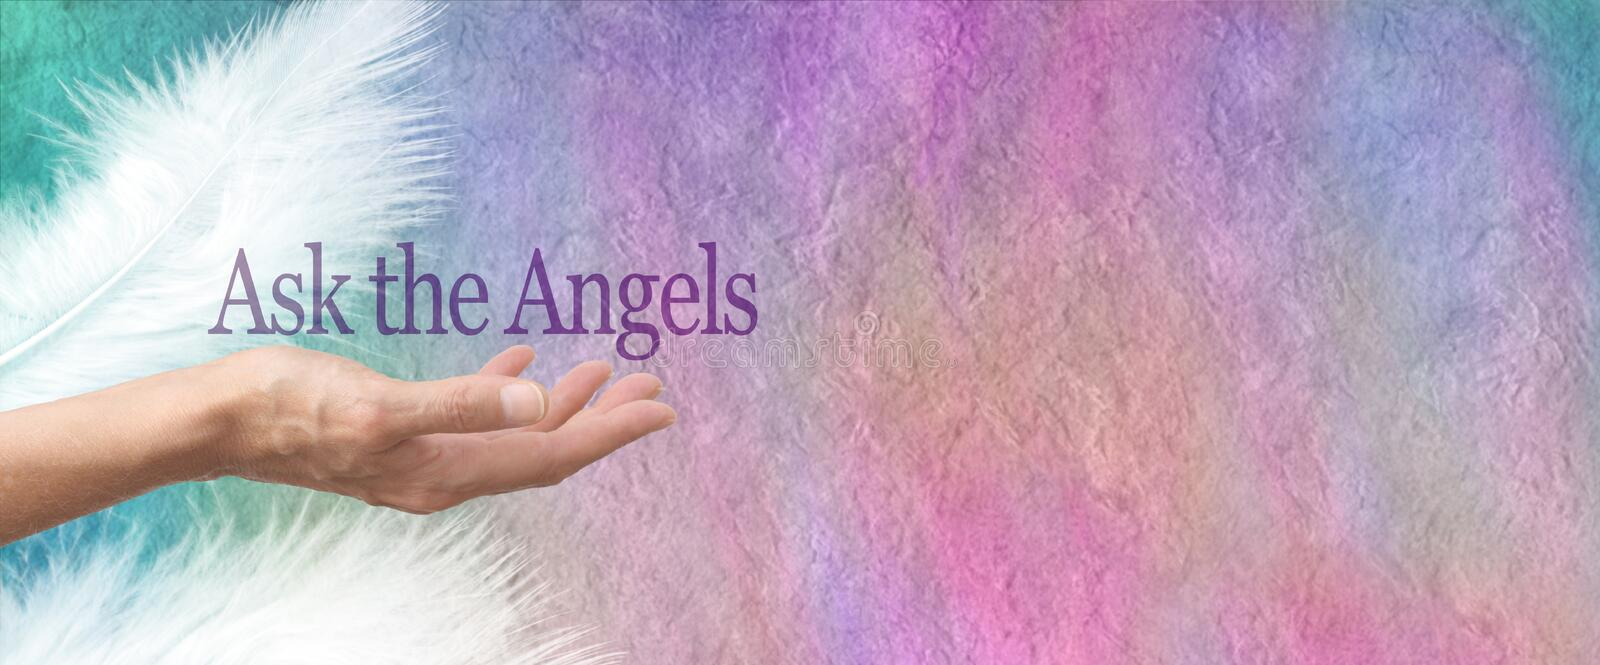 Ask Your Angels Parchment Banner royalty free stock image